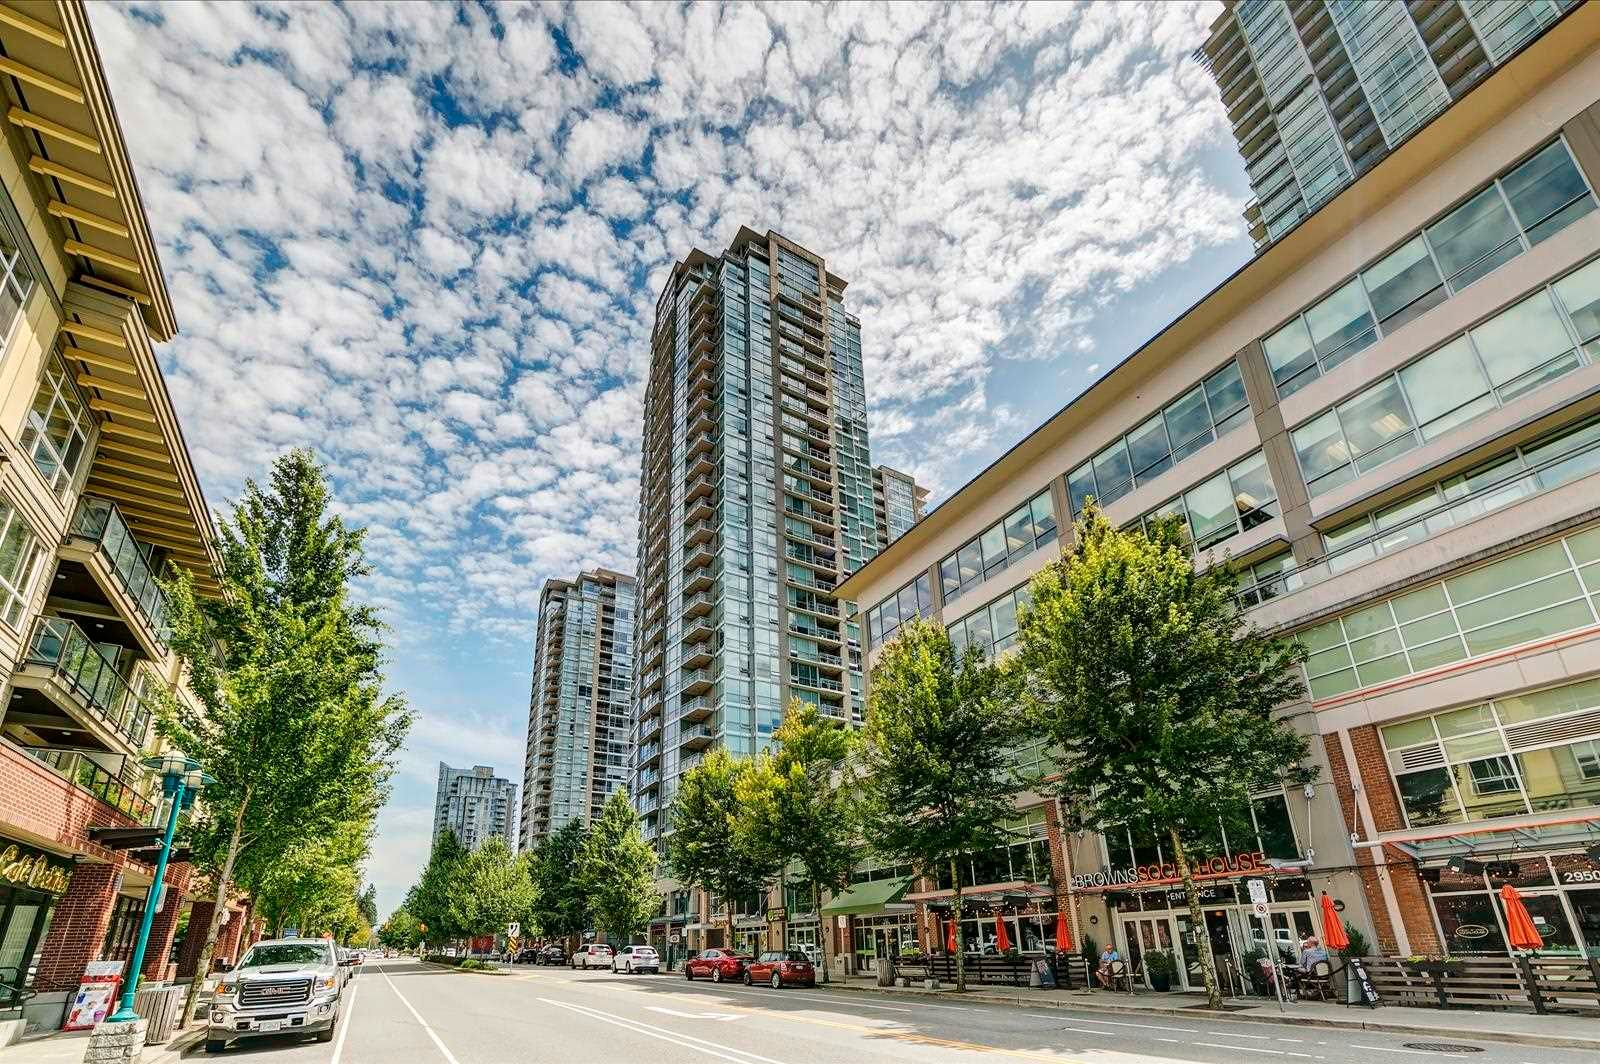 """Main Photo: 3205 2968 GLEN Drive in Coquitlam: North Coquitlam Condo for sale in """"Grand Central 2 by Intergulf"""" : MLS®# R2603826"""